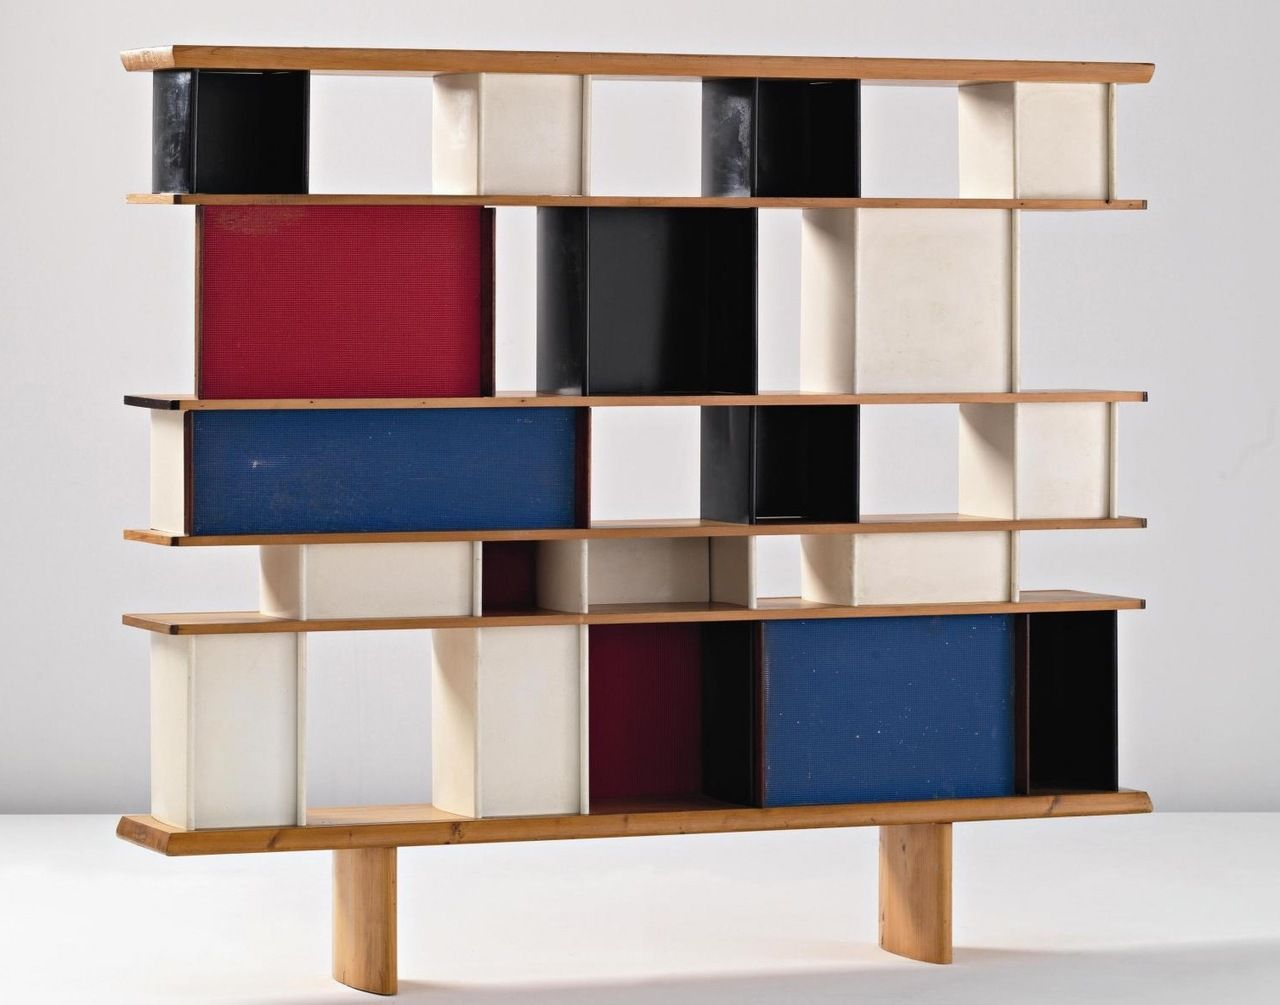 Divider Furniture Charlotte Perriand And Jean Prouvé Roomdivider  Shelves 1952